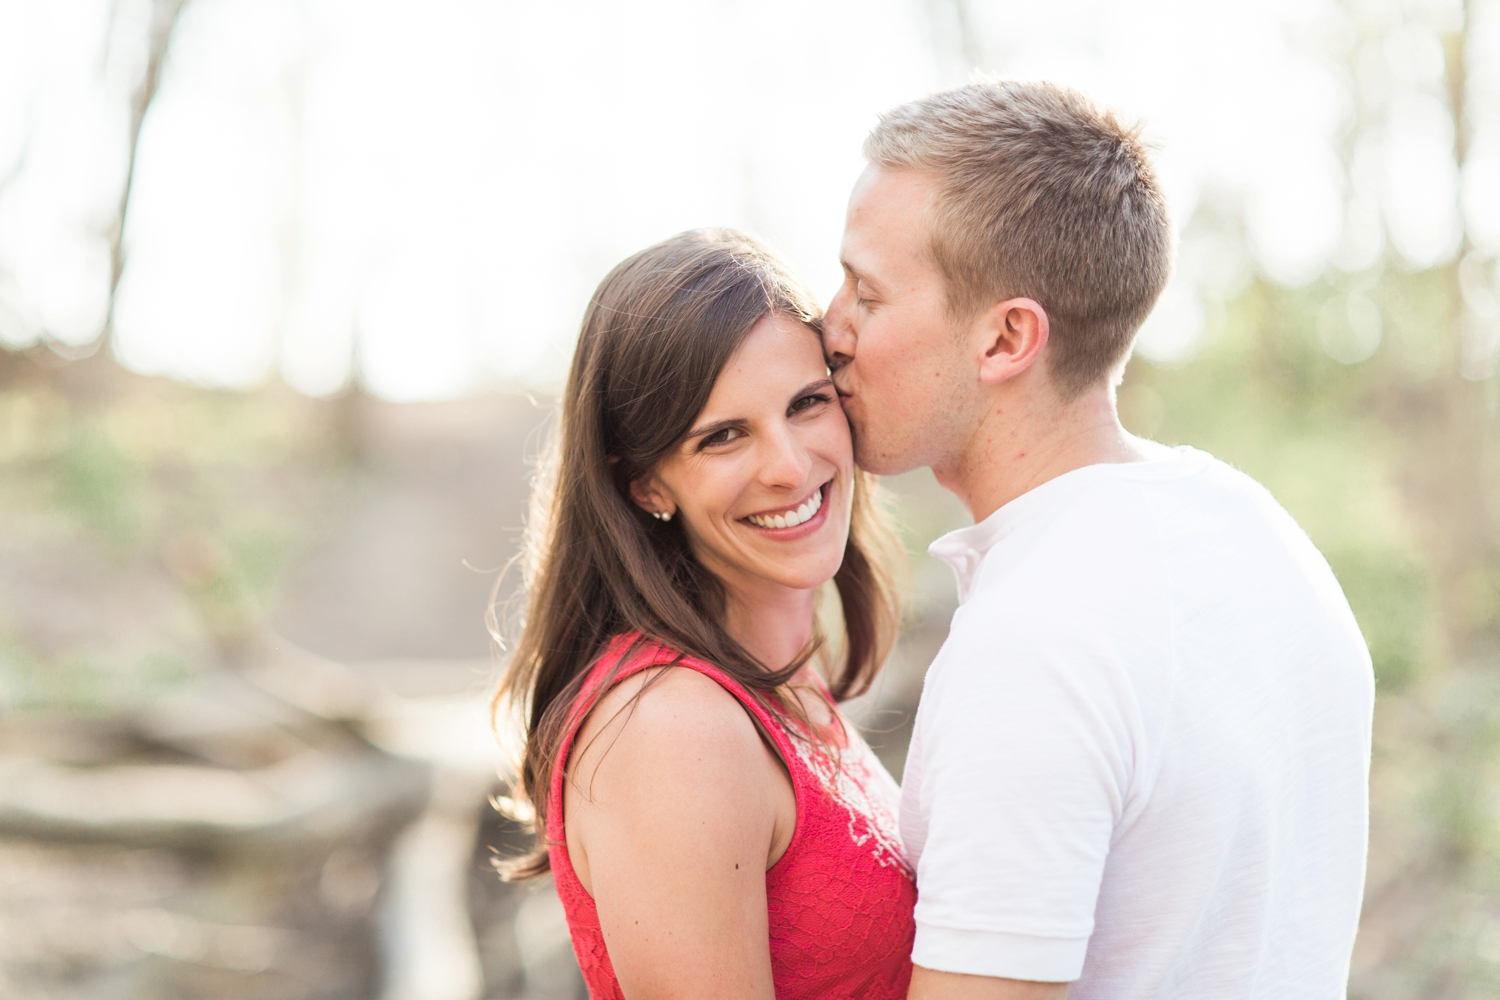 indianapolis_indiana_wedding_photographer_eagle_creek_engagement_chloe_luka_photography_6339.jpg